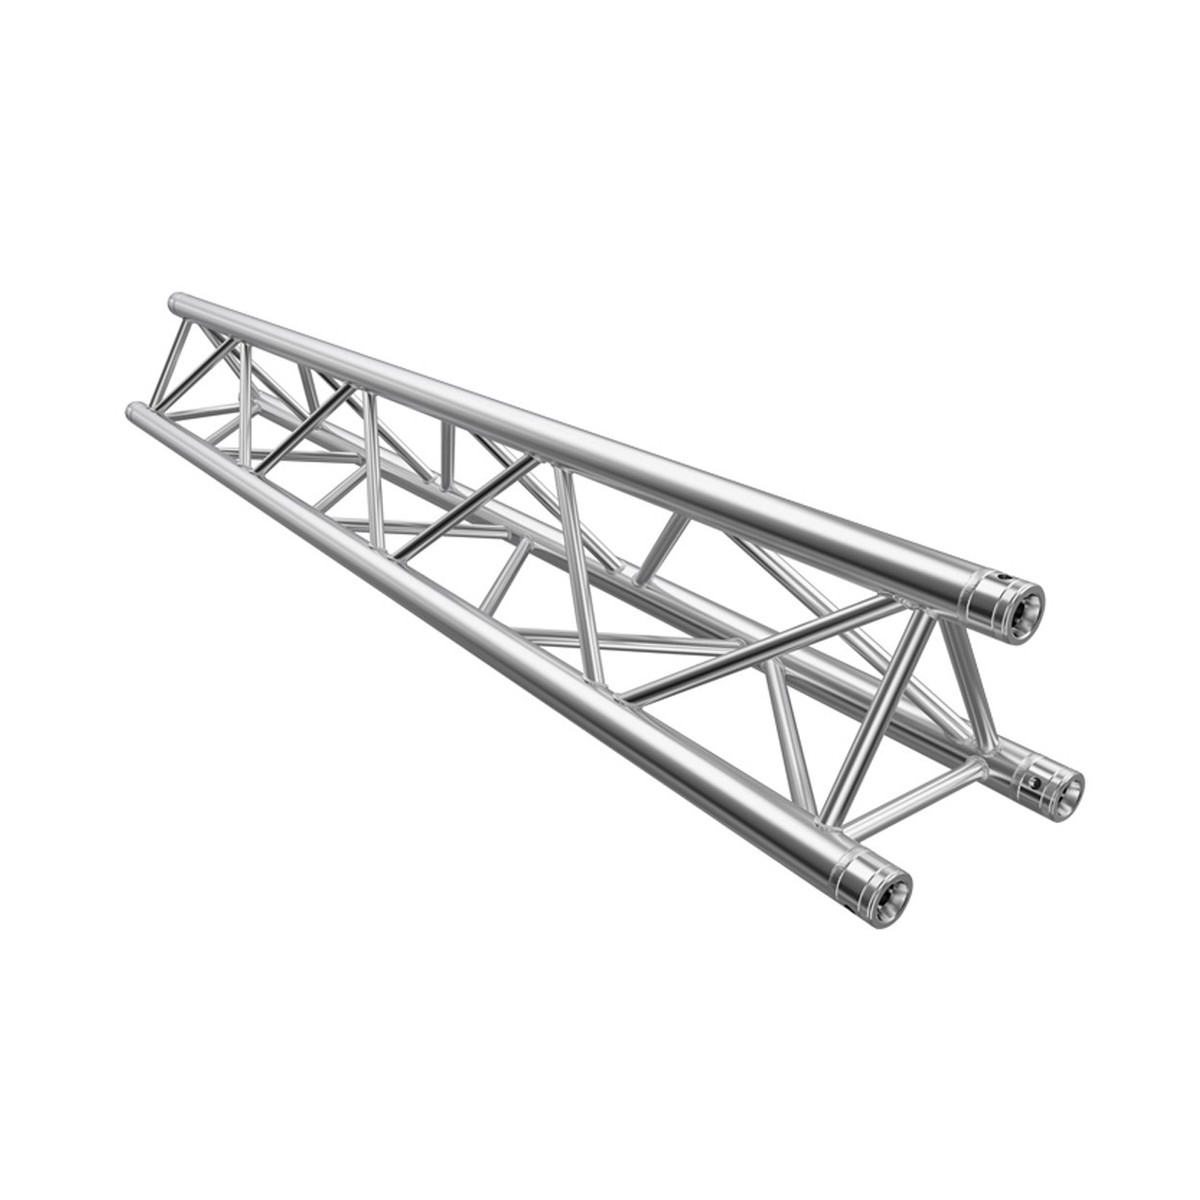 2m Global Truss Pl 4079 F33 Pl Truss 2m